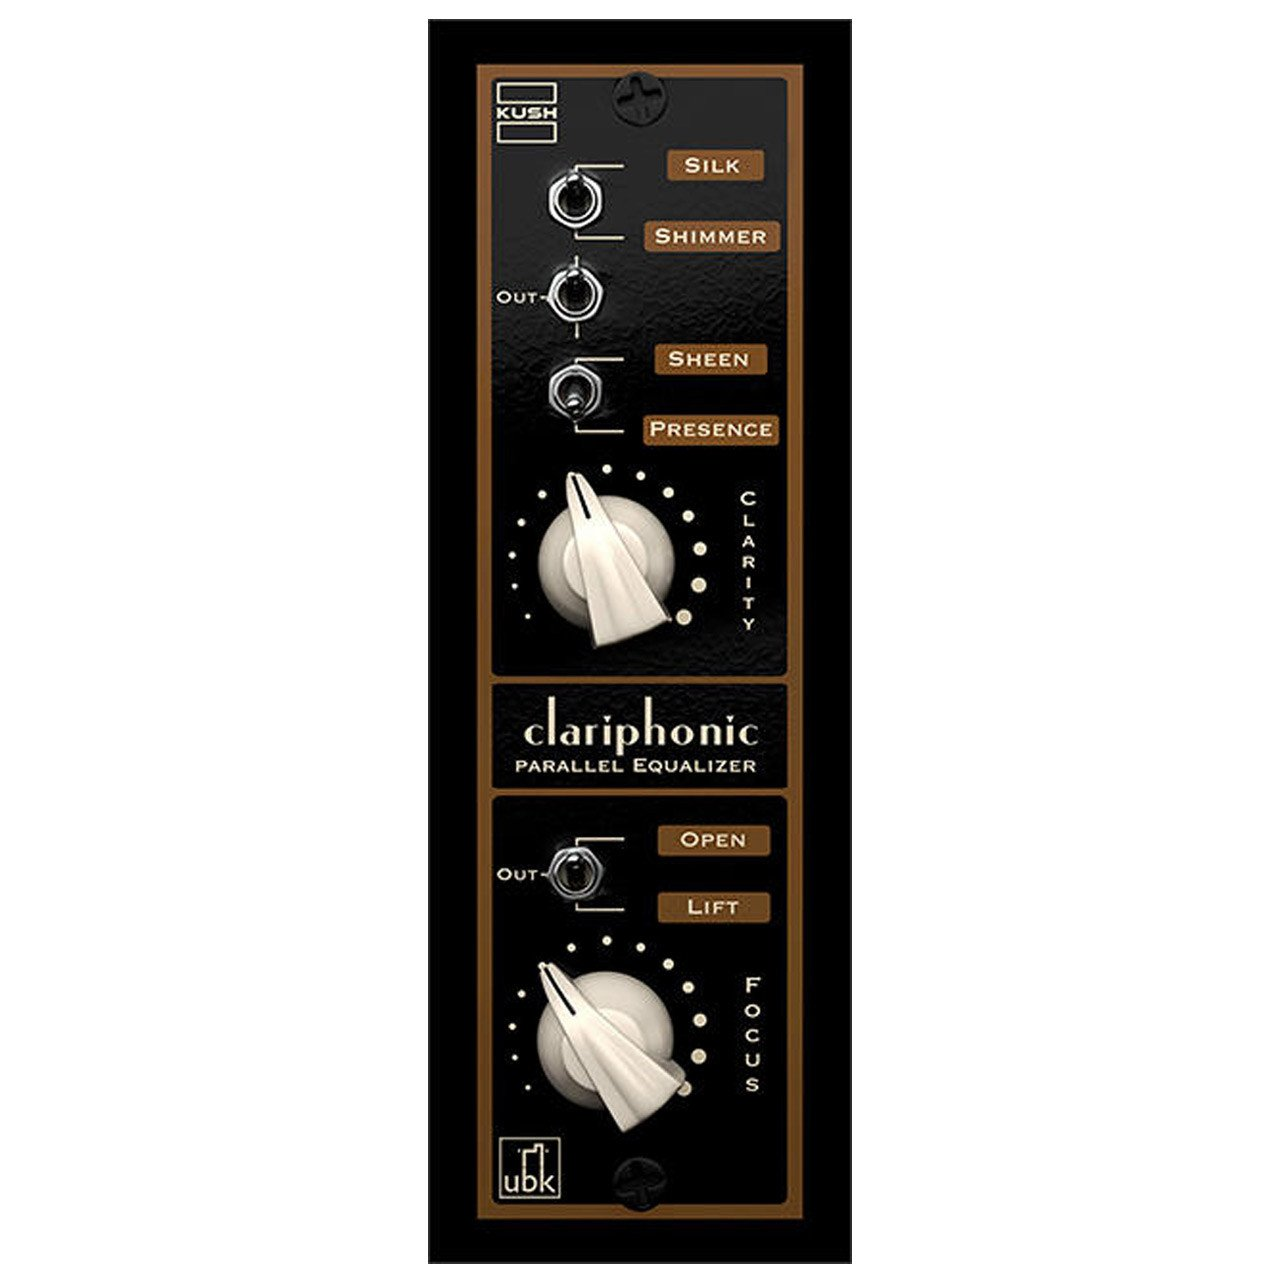 500 Series - Kush Audio UBK Clariphonic 500 Parallel Equalizer